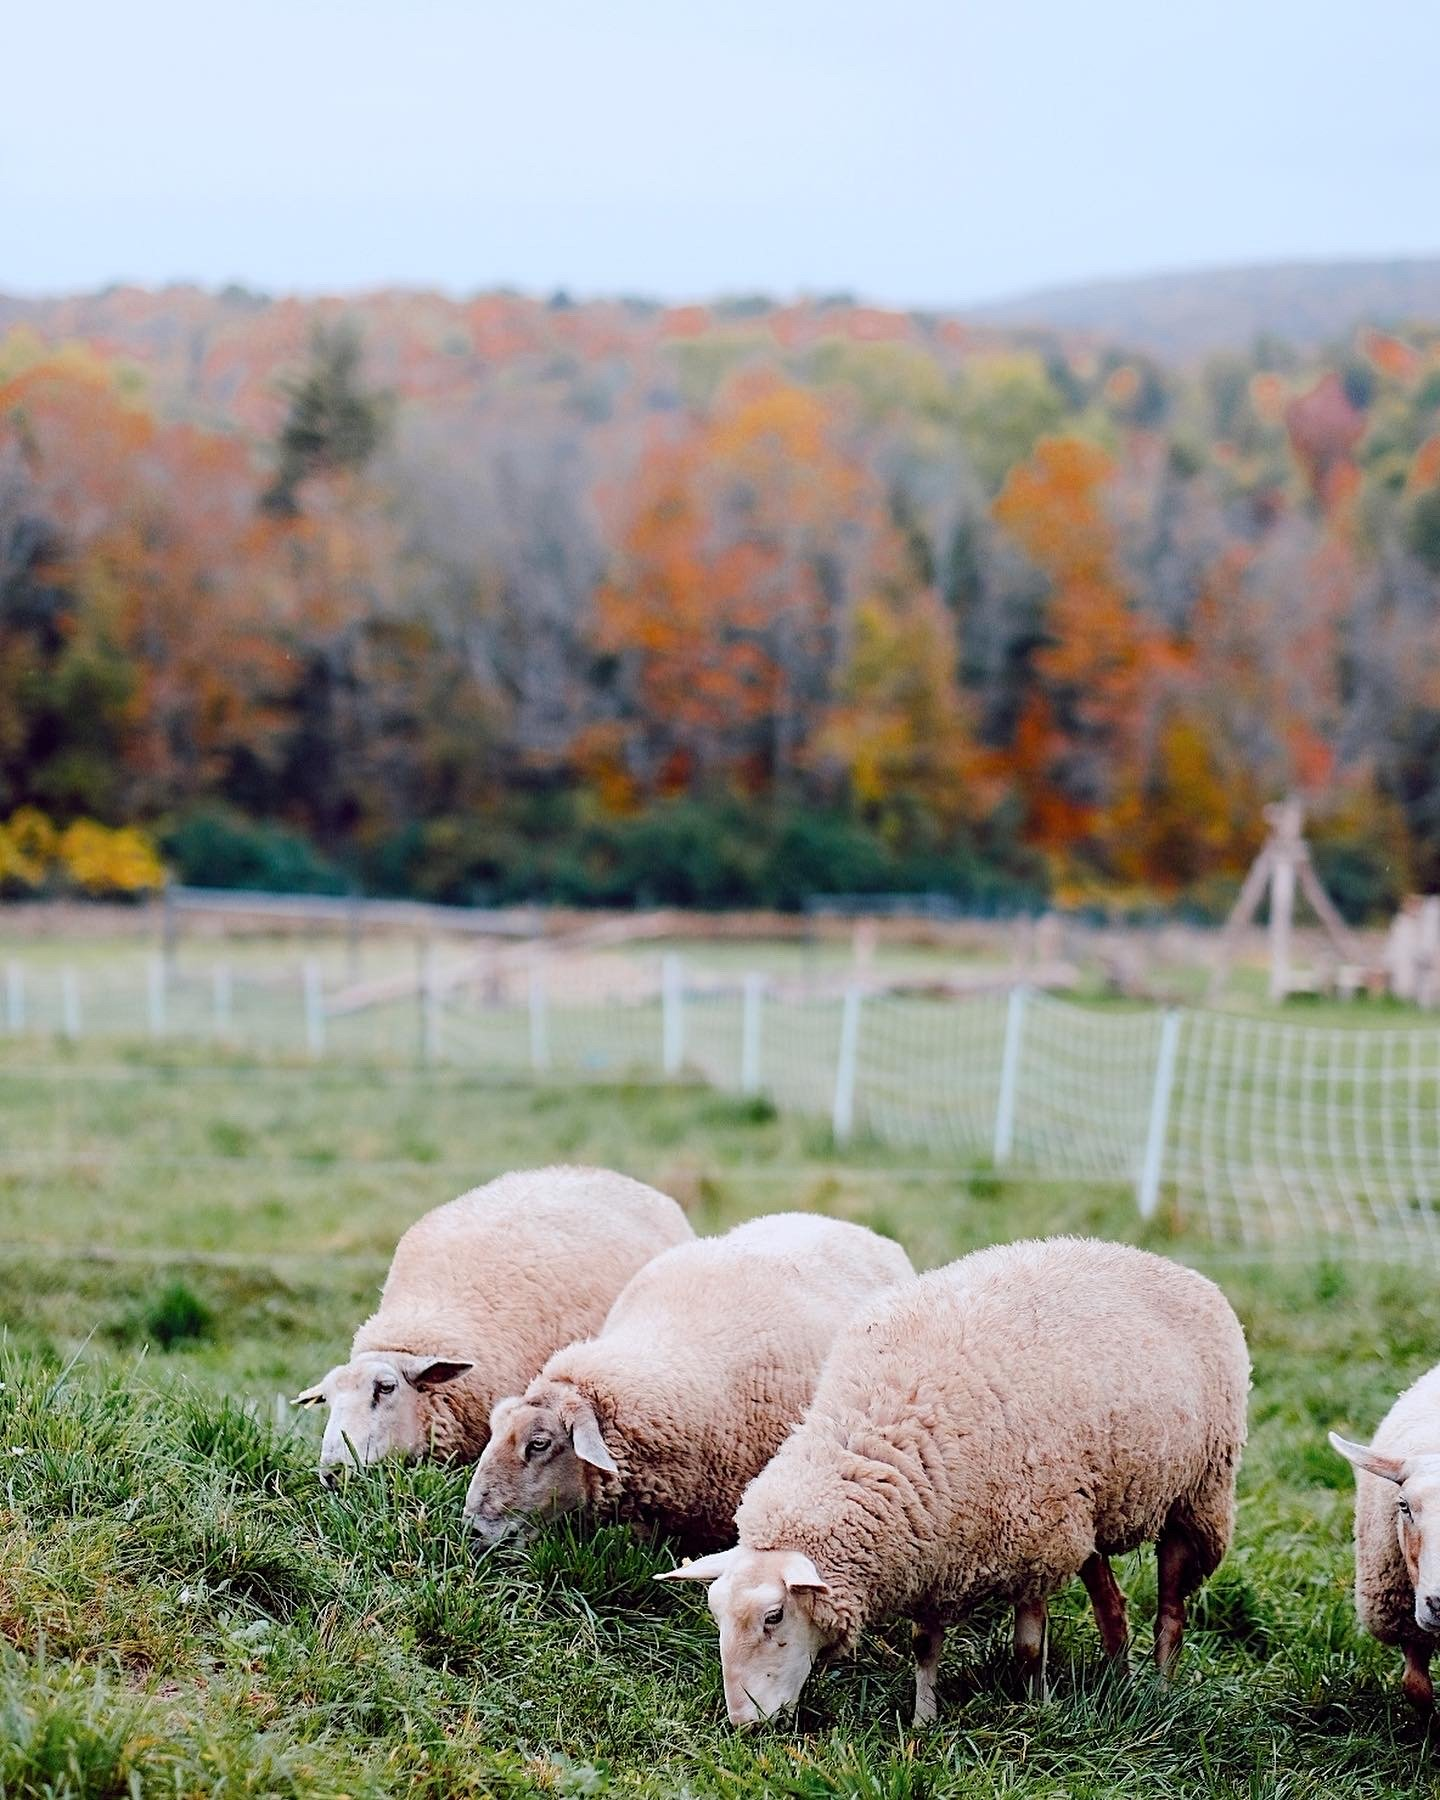 Our Stay at Fat Sheep Farm in Vermont